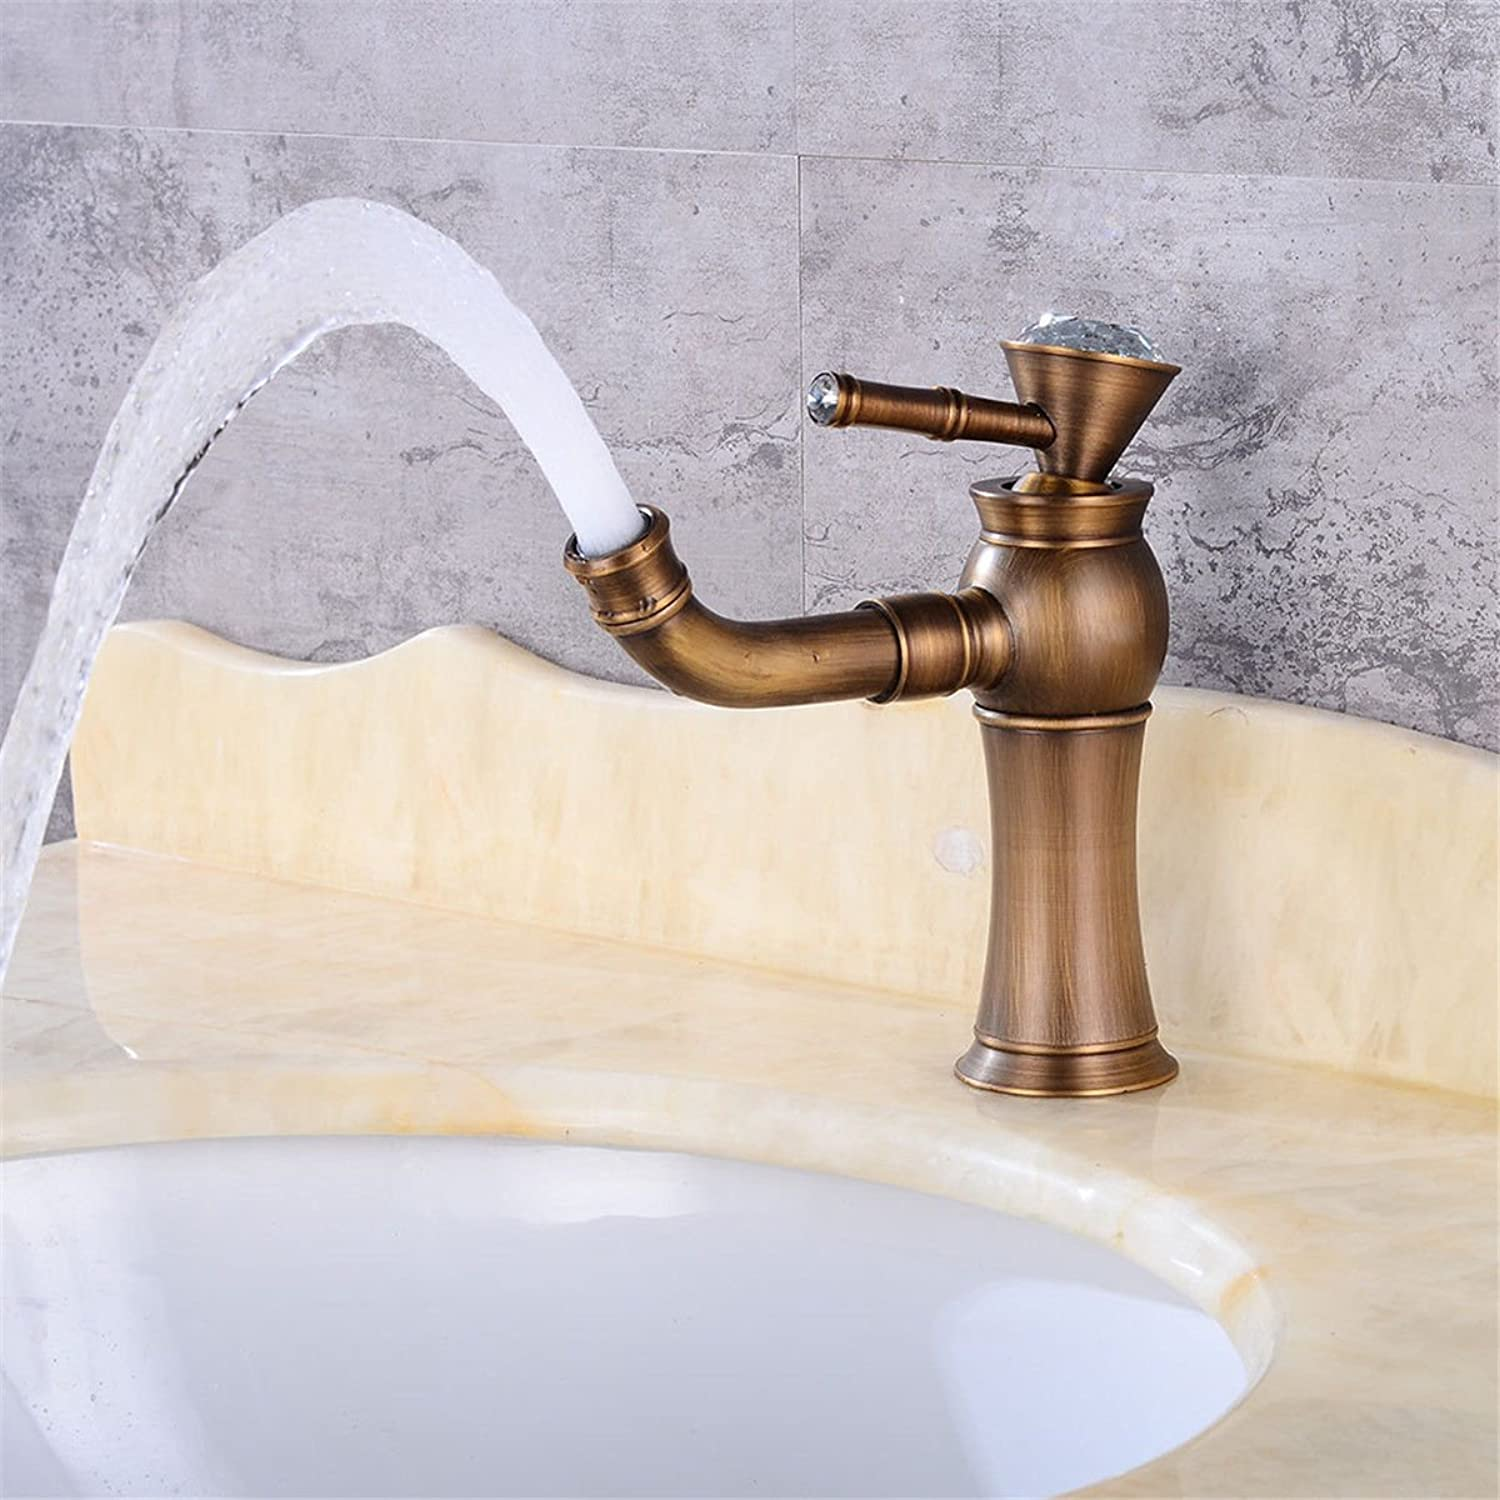 AQMMi Basin Taps Bathroom Sink Faucet Antique Brass redatable Bathroom Sink Faucet Basin Mixer Tap